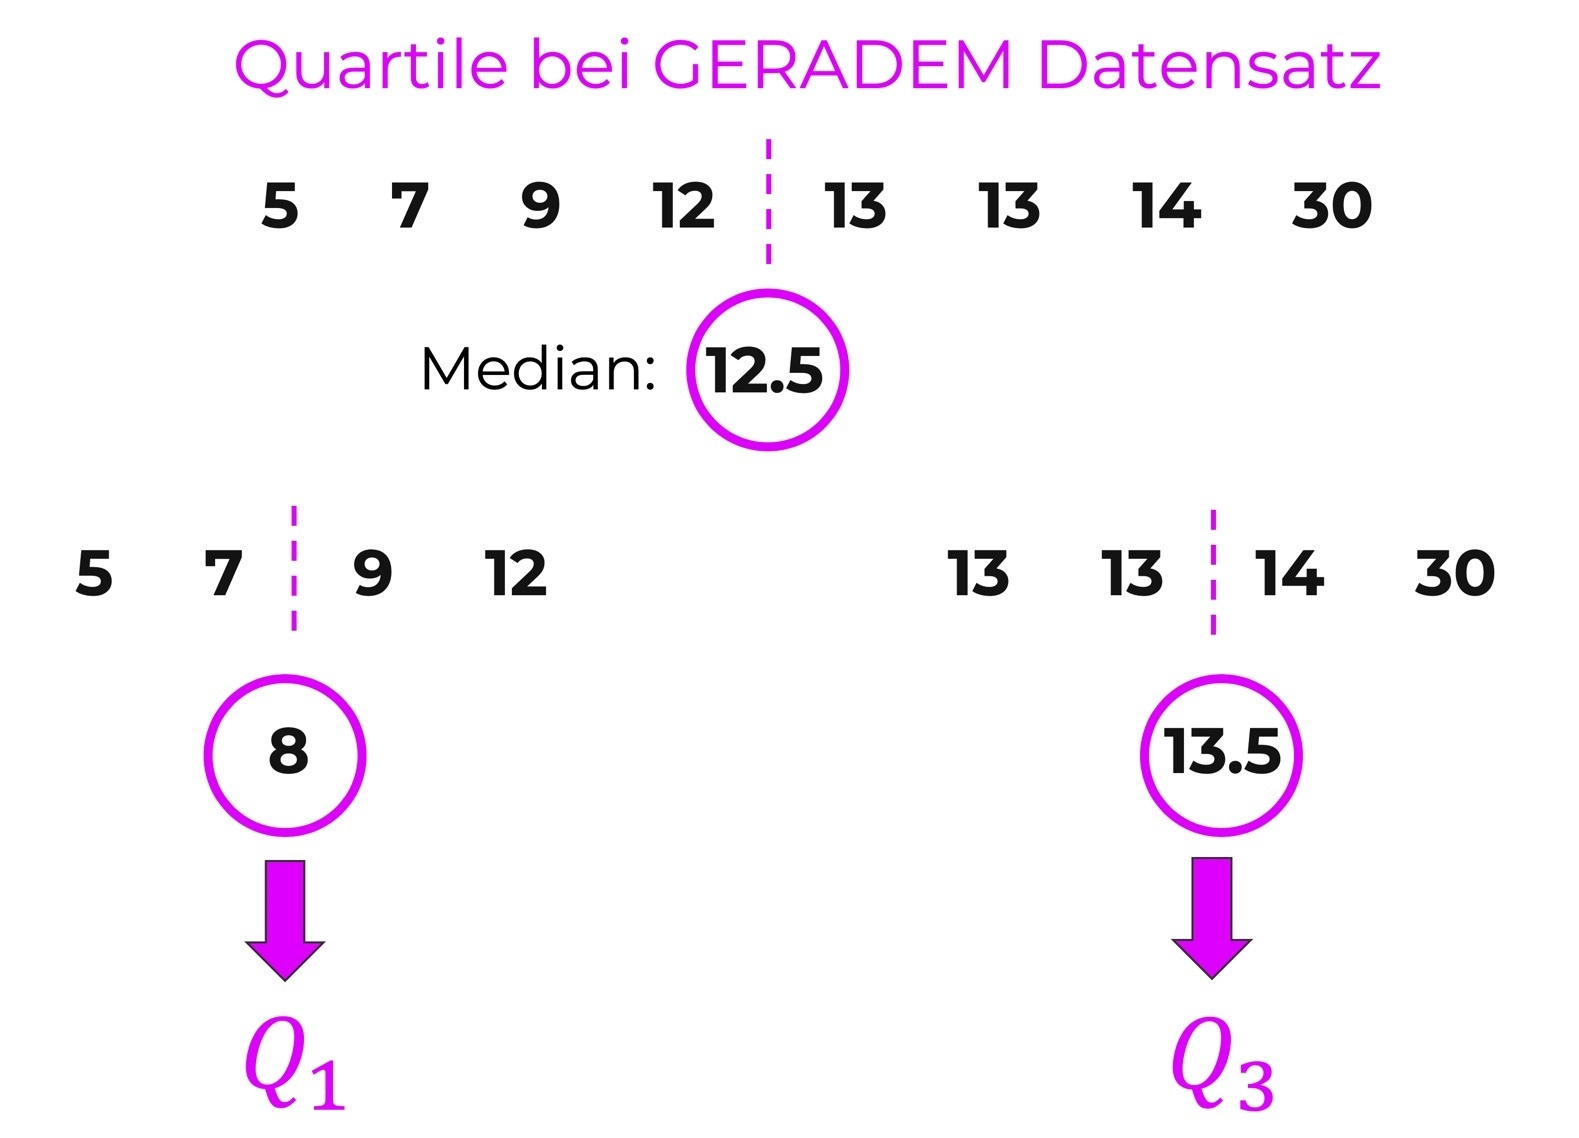 boxplot-quartile-gerader-datensatz